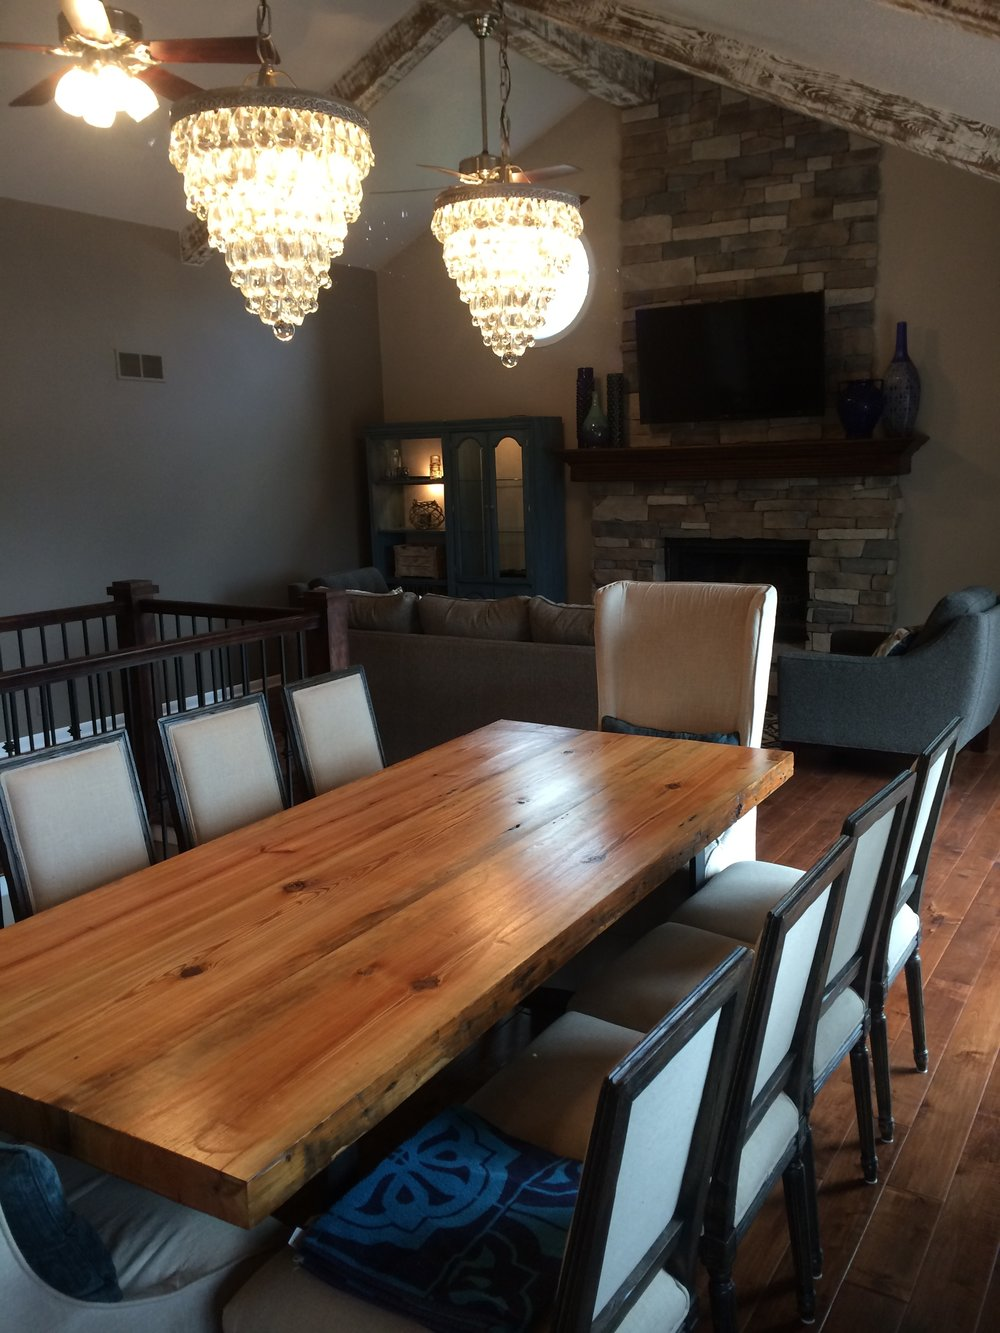 After - Wide open spaces with flowing hardwood floors, new custom lighting and floor to ceiling hand laid stone fireplace.  Also note the custom table made by Cody.